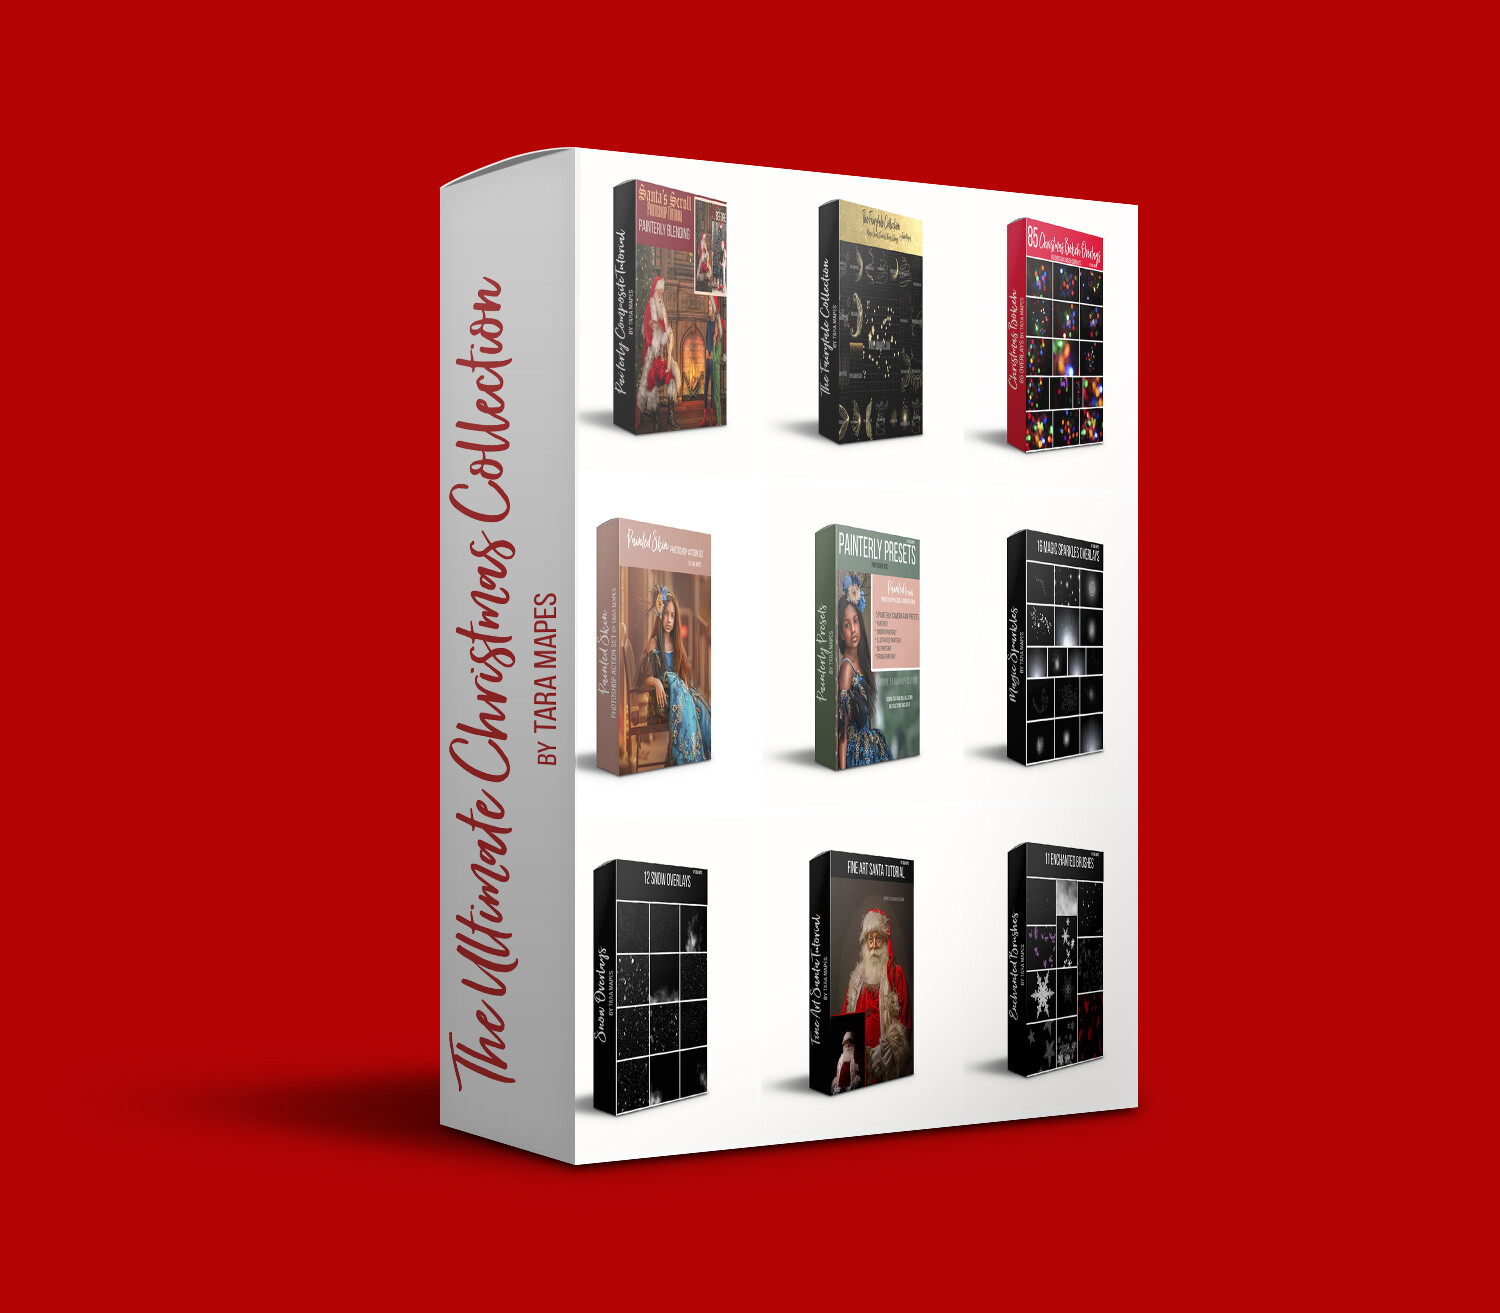 The Ultimate Christmas Collection by Tara Mapes -  Tutorials - Full Action Workflows - Overlays - Presets - A Fine Art Christmas